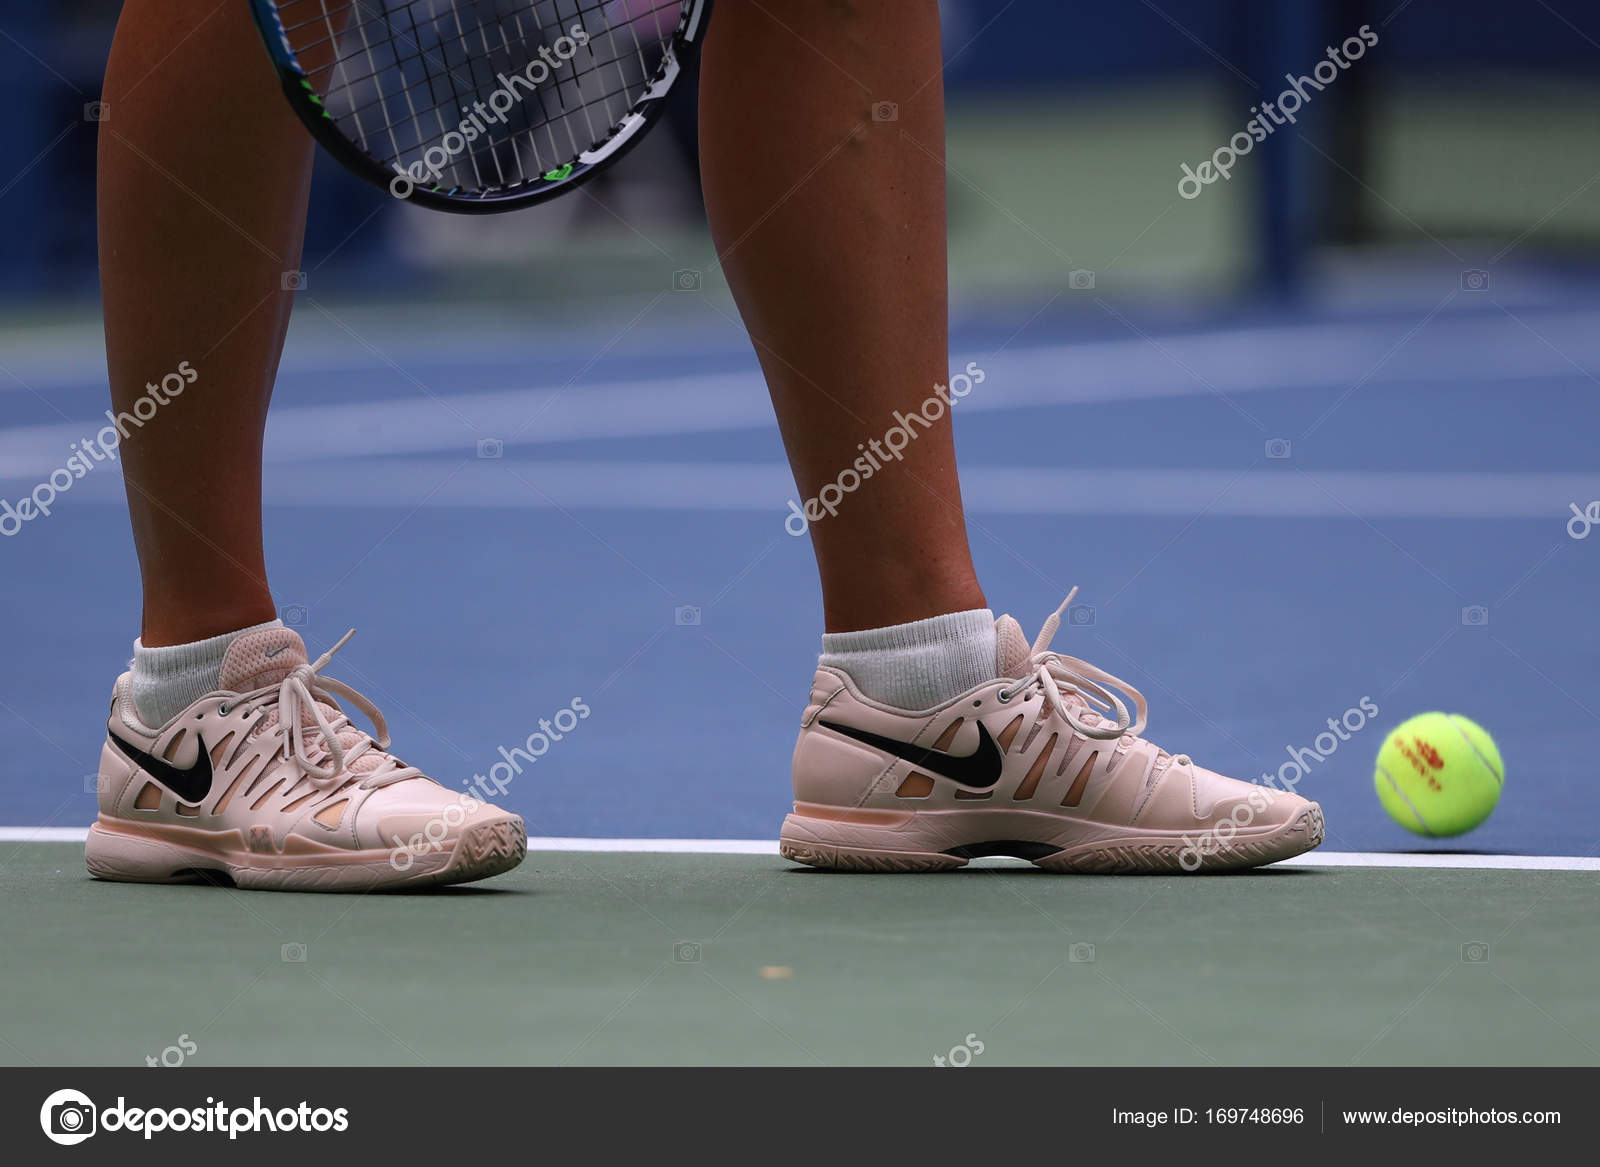 crociera Dire la verità Quale  Five times Grand Slam Champion Maria Sharapova of Russian Federation wears  custom Nike tennis shoes during 2017 US Open – Stock Editorial Photo ©  zhukovsky #169748696